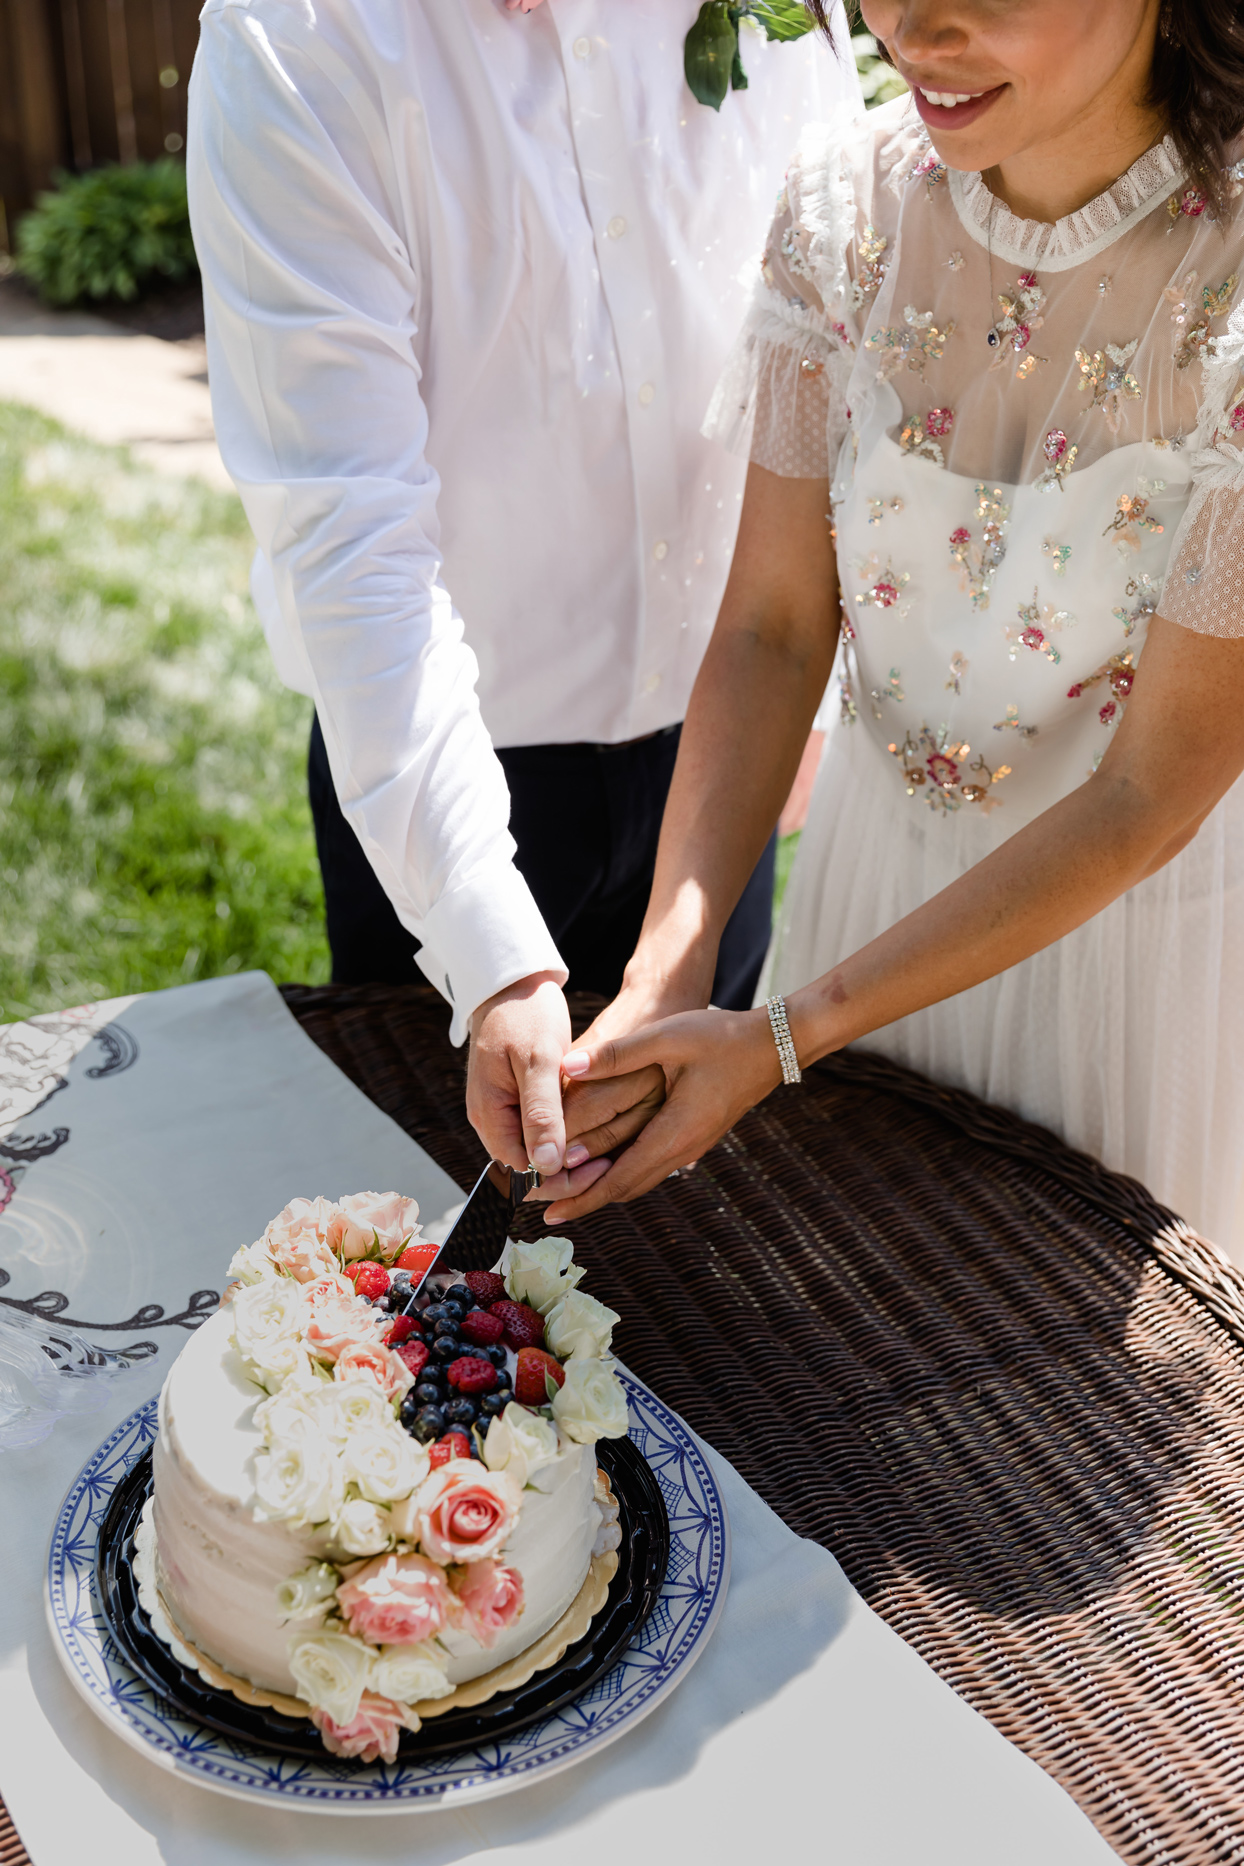 bride and groom cutting wedding cake topped with berries